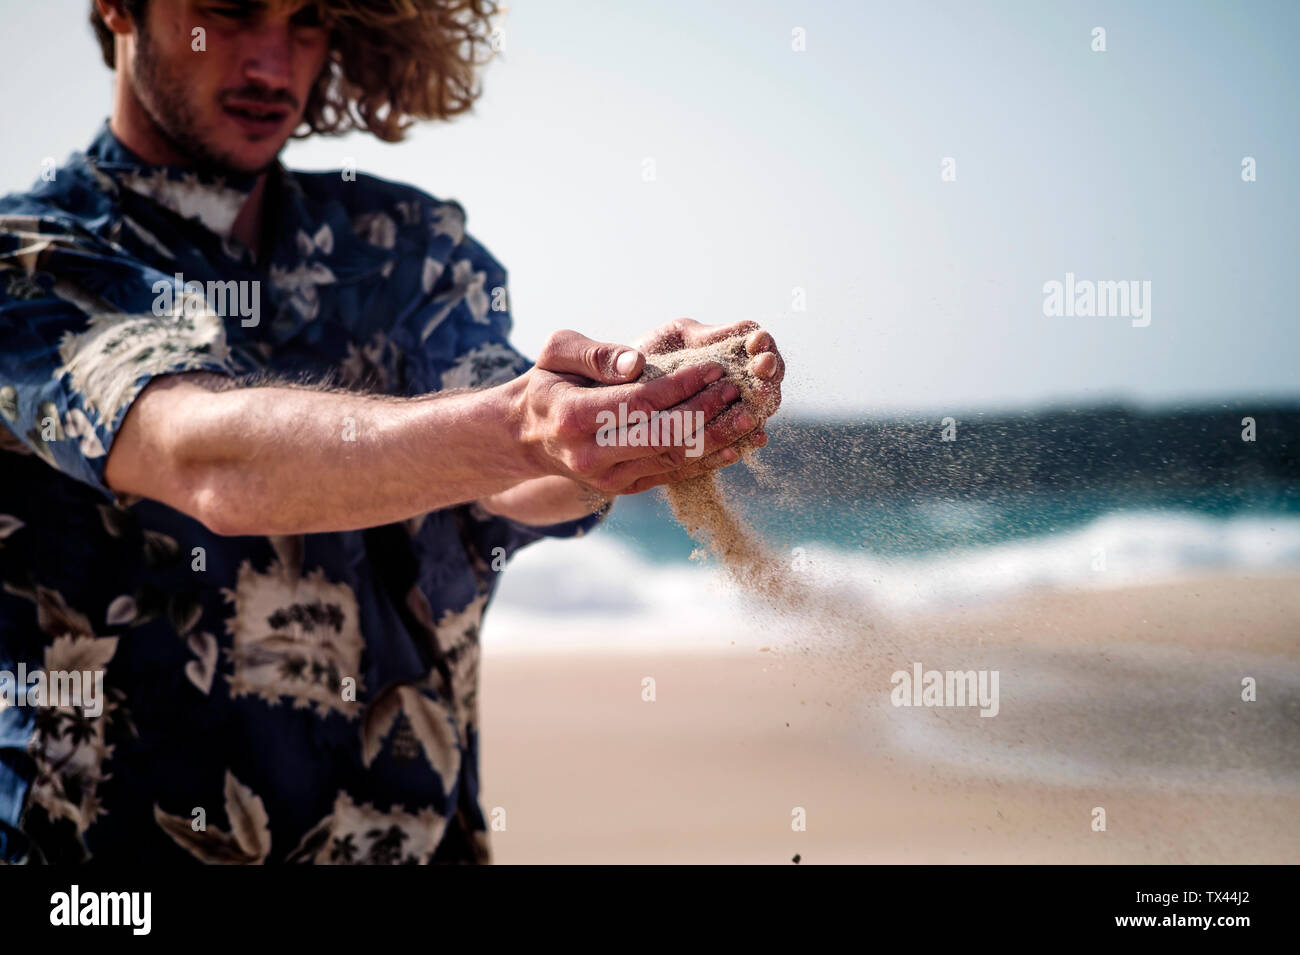 Man on the beach trickling sand through his hands - Stock Image